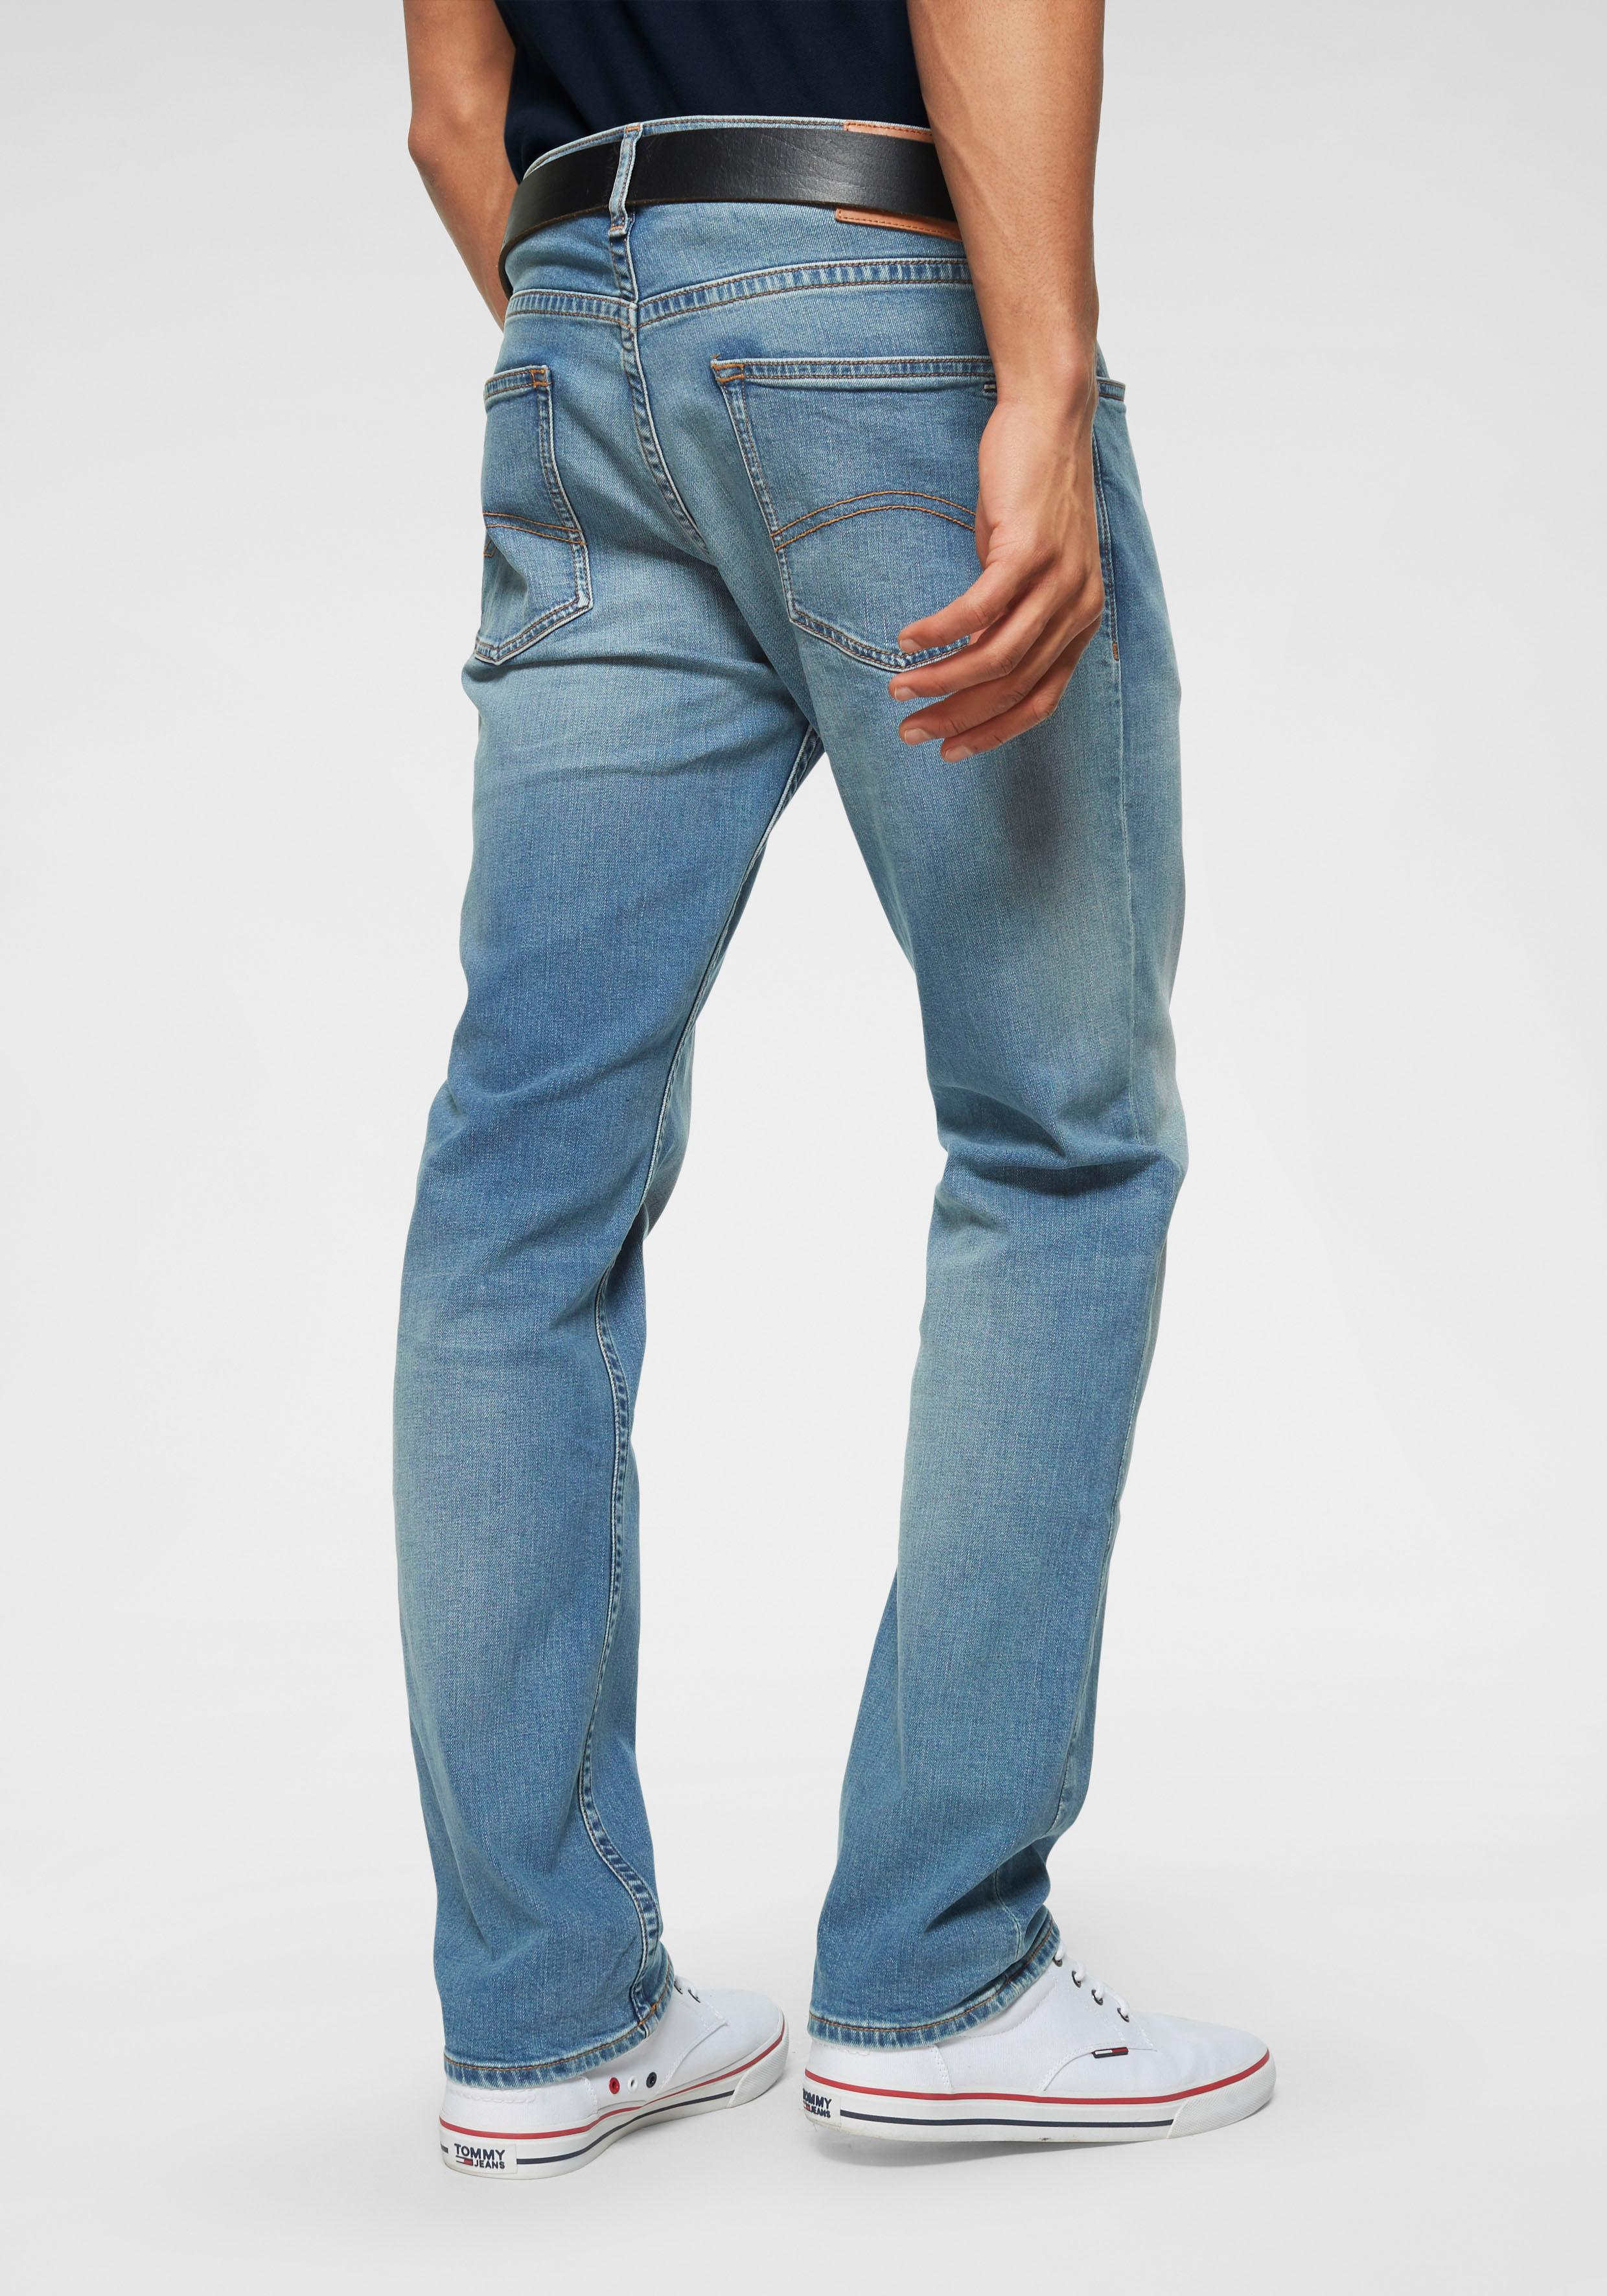 TOMMY JEANS Straight-Jeans ORIGINAL STRAIGHT RYAN | Bekleidung > Jeans | Tommy Jeans